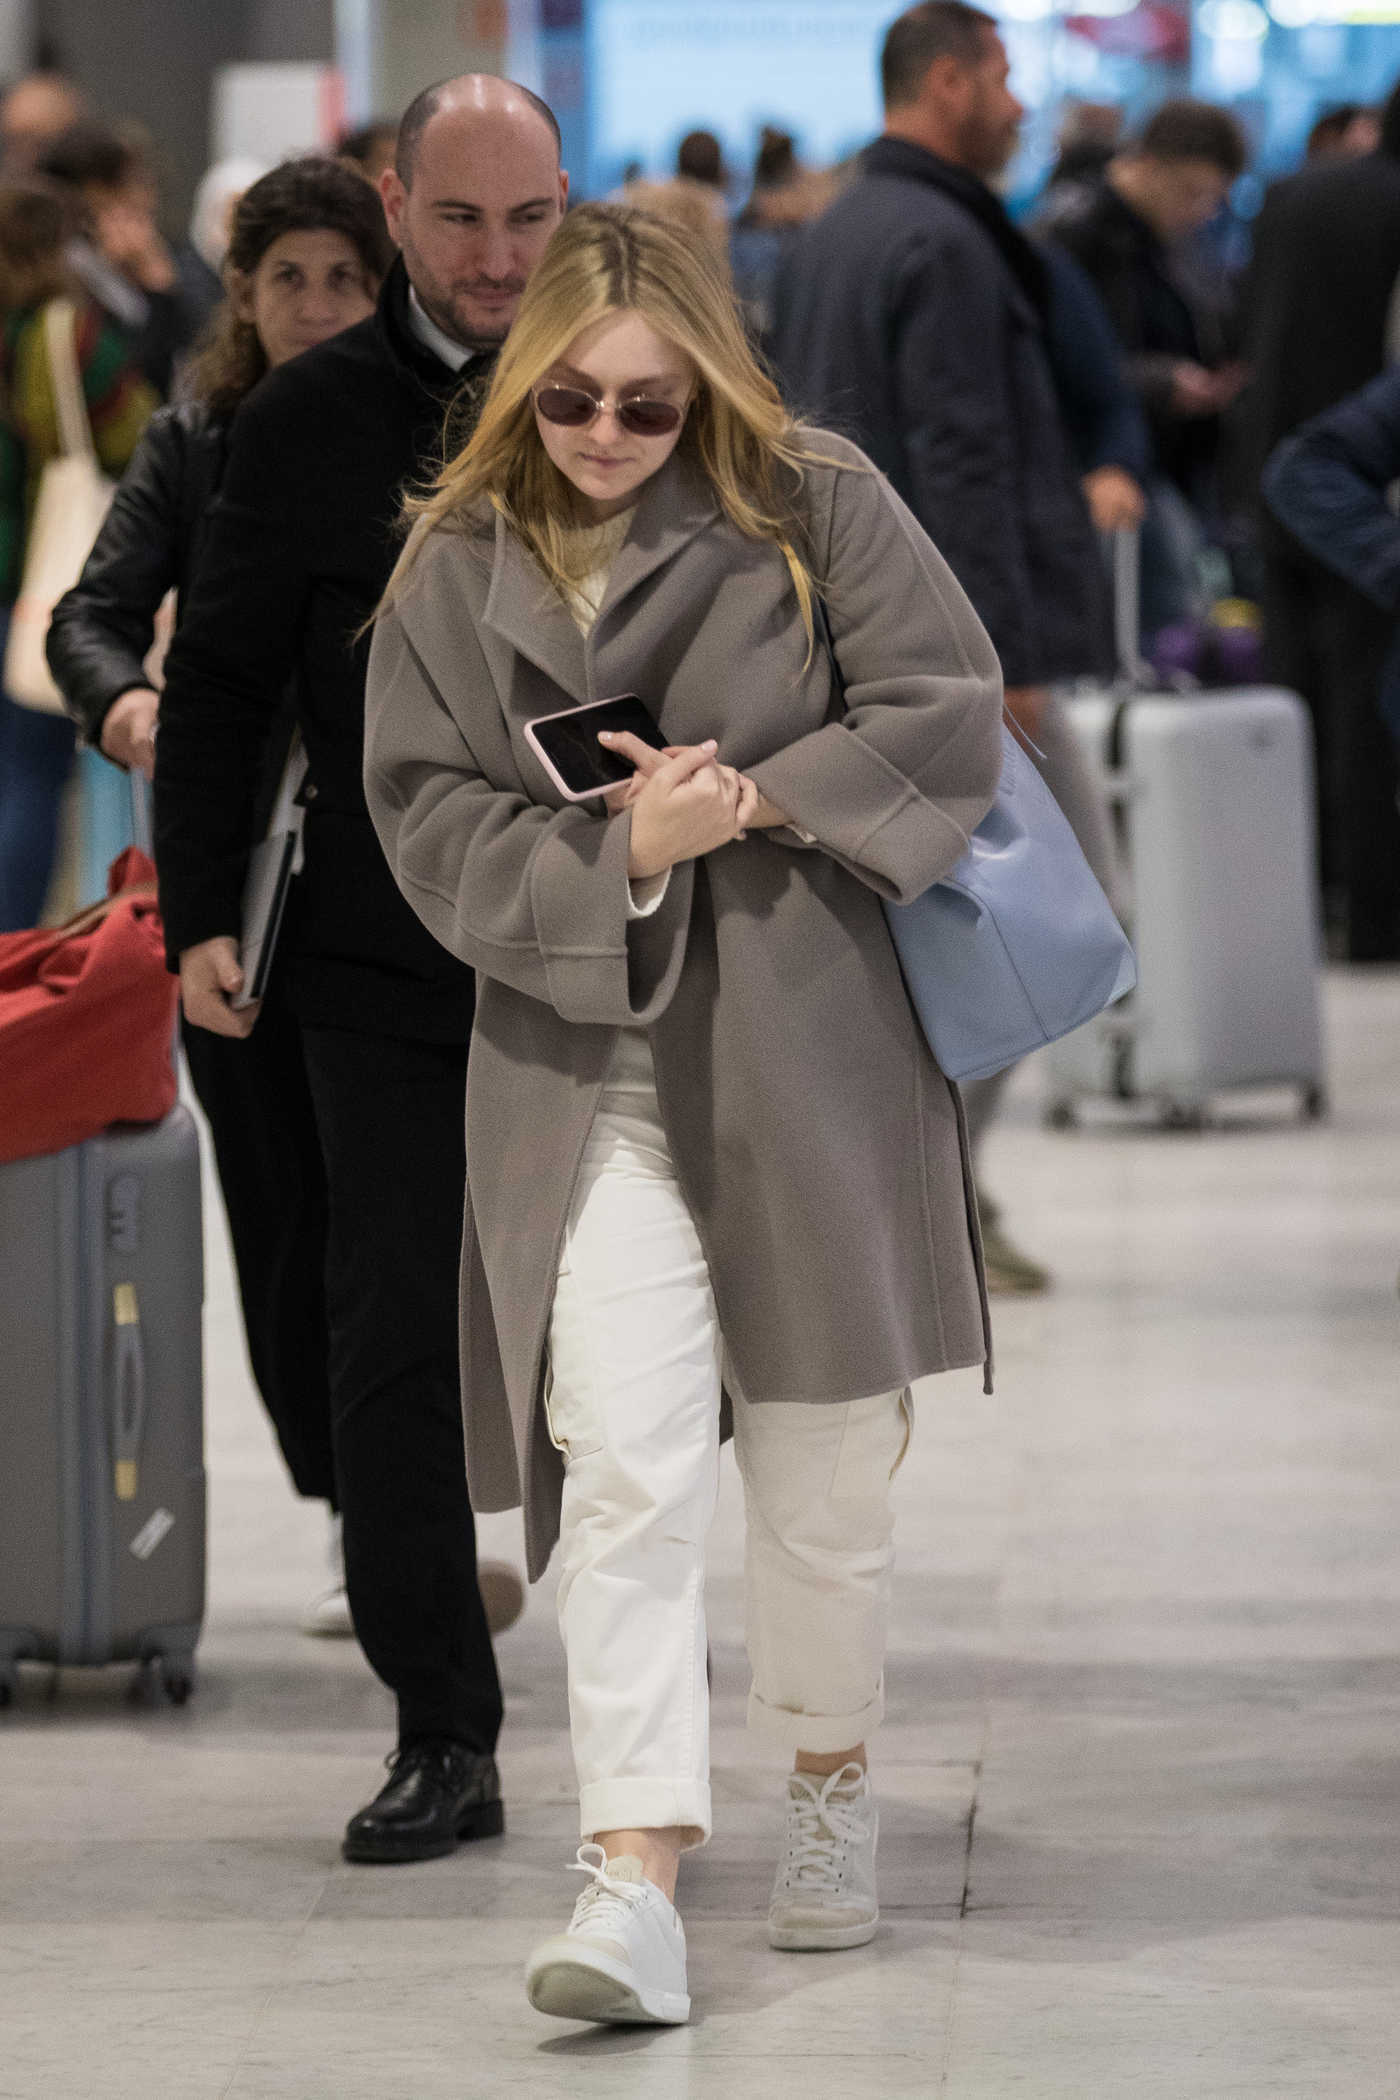 Dakota Fanning in a Beige Coat Arrives at the CDG Airport in Paris 01/21/2019